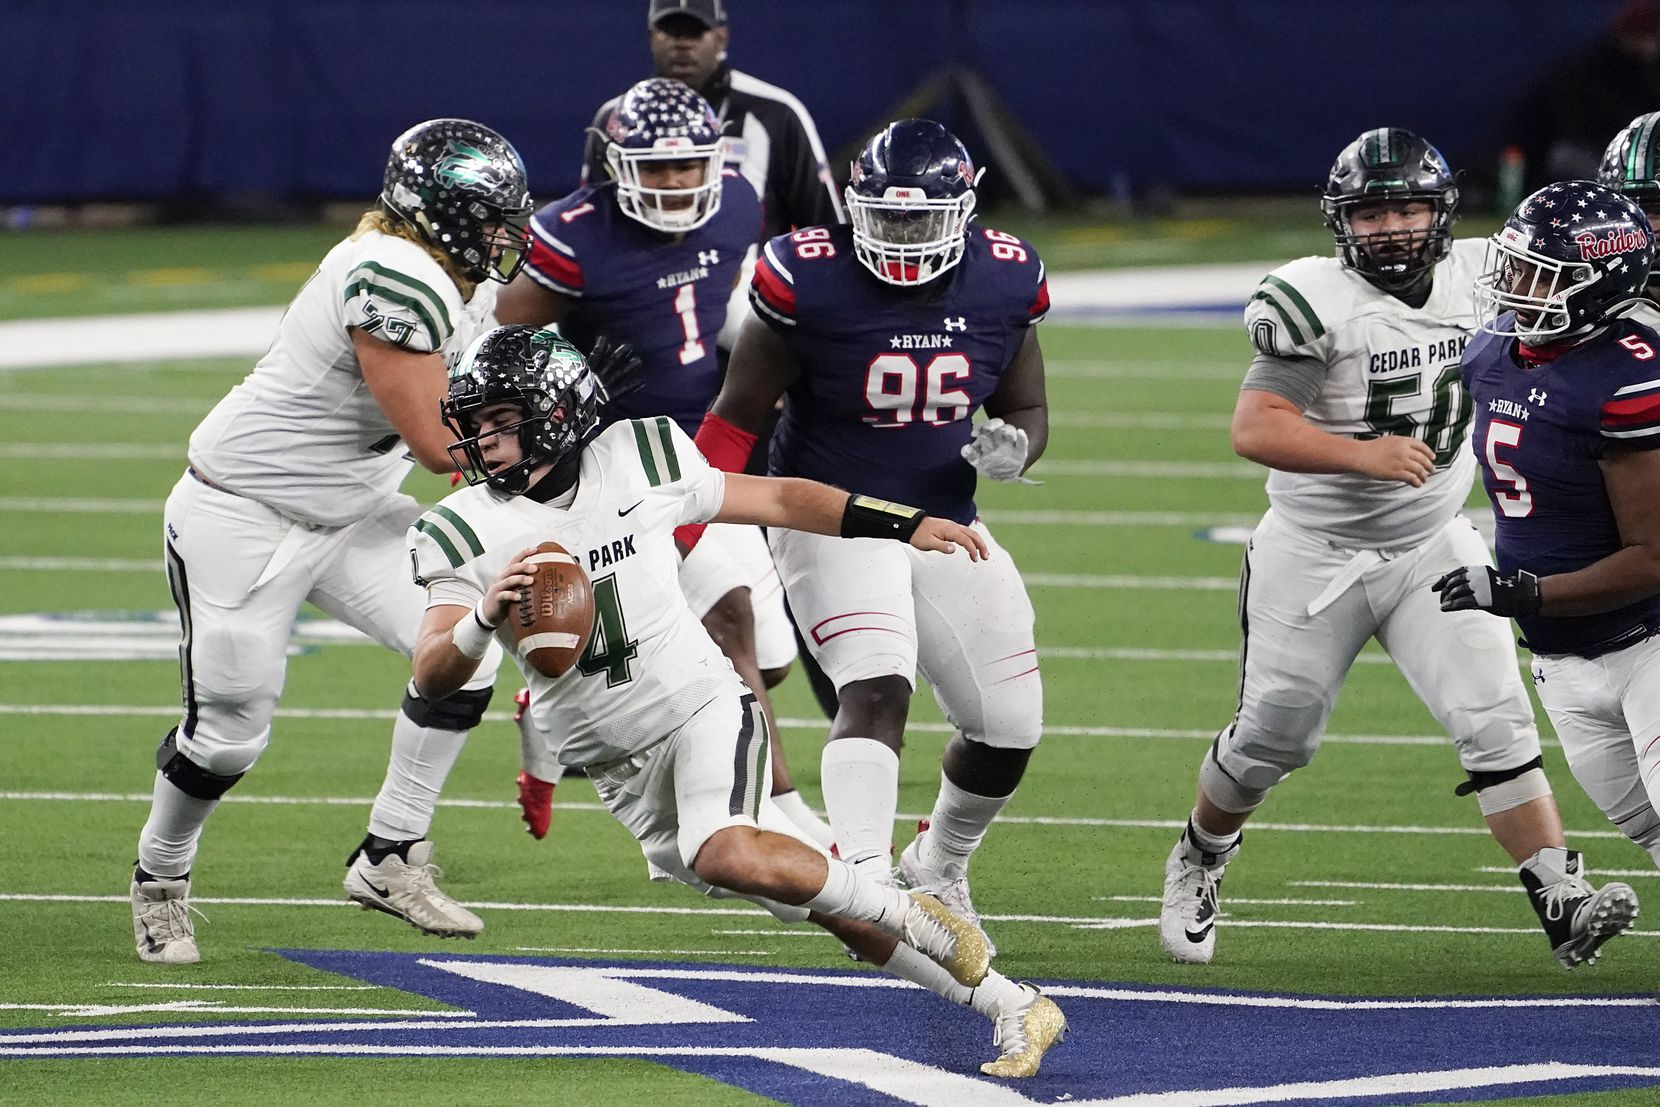 Cedar Park quarterback Ryder Hernandez (4) is flushed from the pocket by Denton Ryan defensive lineman Bear Alexander (96) during the second half of the Class 5A Division I state football championship game at AT&T Stadium on Friday, Jan. 15, 2021, in Arlington, Texas. Ryan won the game 59-14. (Smiley N. Pool/The Dallas Morning News)